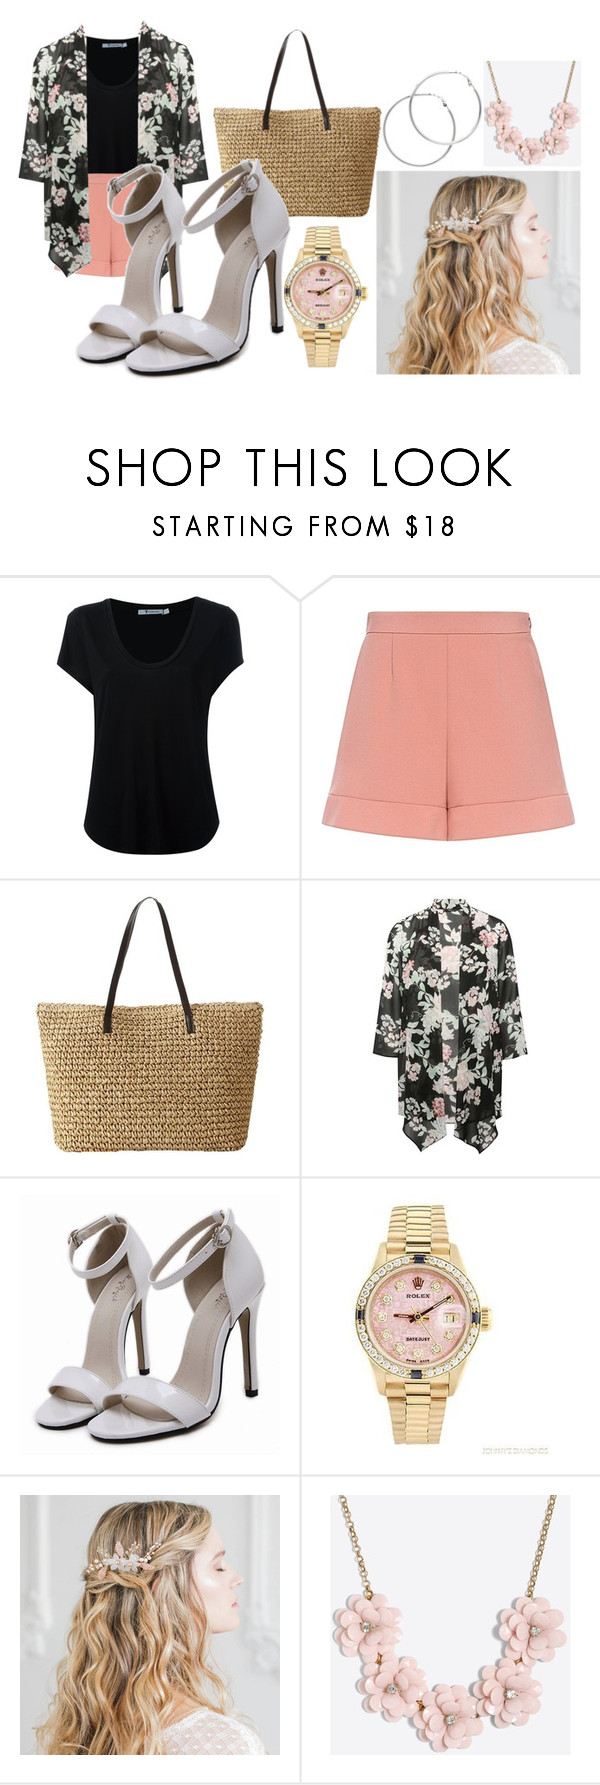 """""""🌸Summer Floral Combo 🌸"""" by blue99star on Polyvore featuring Alexander Wang, RED Valentino, M&Co, Rolex, J.Crew and Melissa Odabash"""